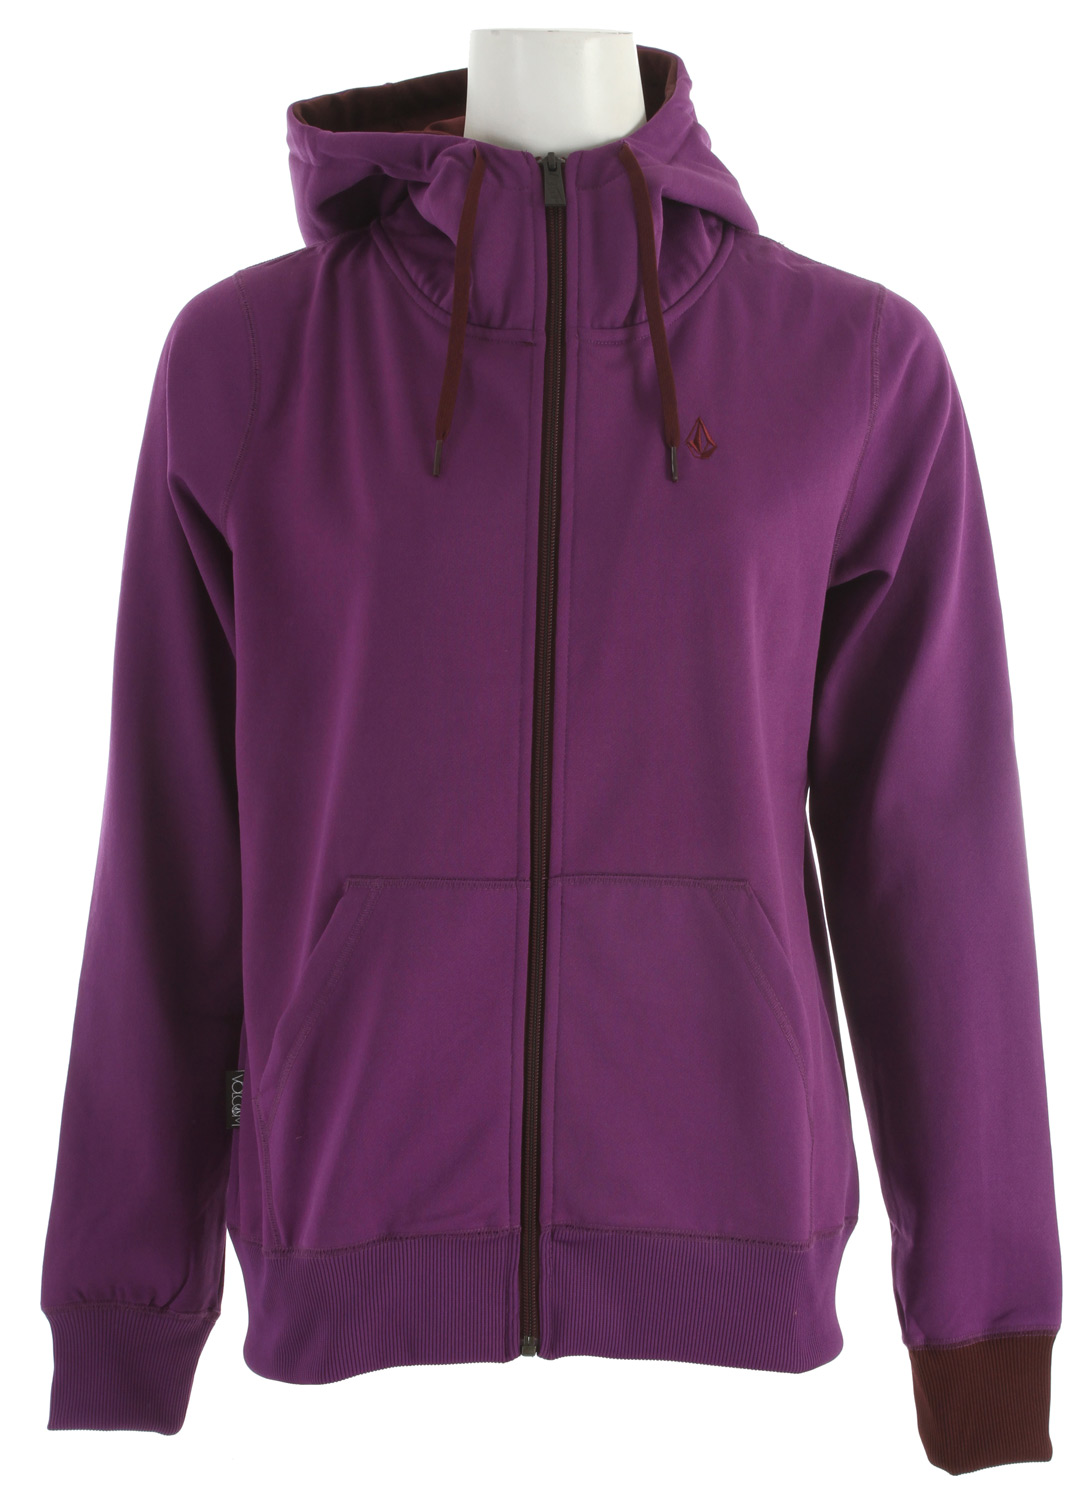 Surf Key Features of the Volcom Carpel Full Zip Hoodie: Hydrophobic Fleece Ribbed Cuff Ribbed Hem Contract Colored Drawcord Hood Cinch Contrast Colored Hood Lining Stone Embroidery Volcom Woven Label - $55.00